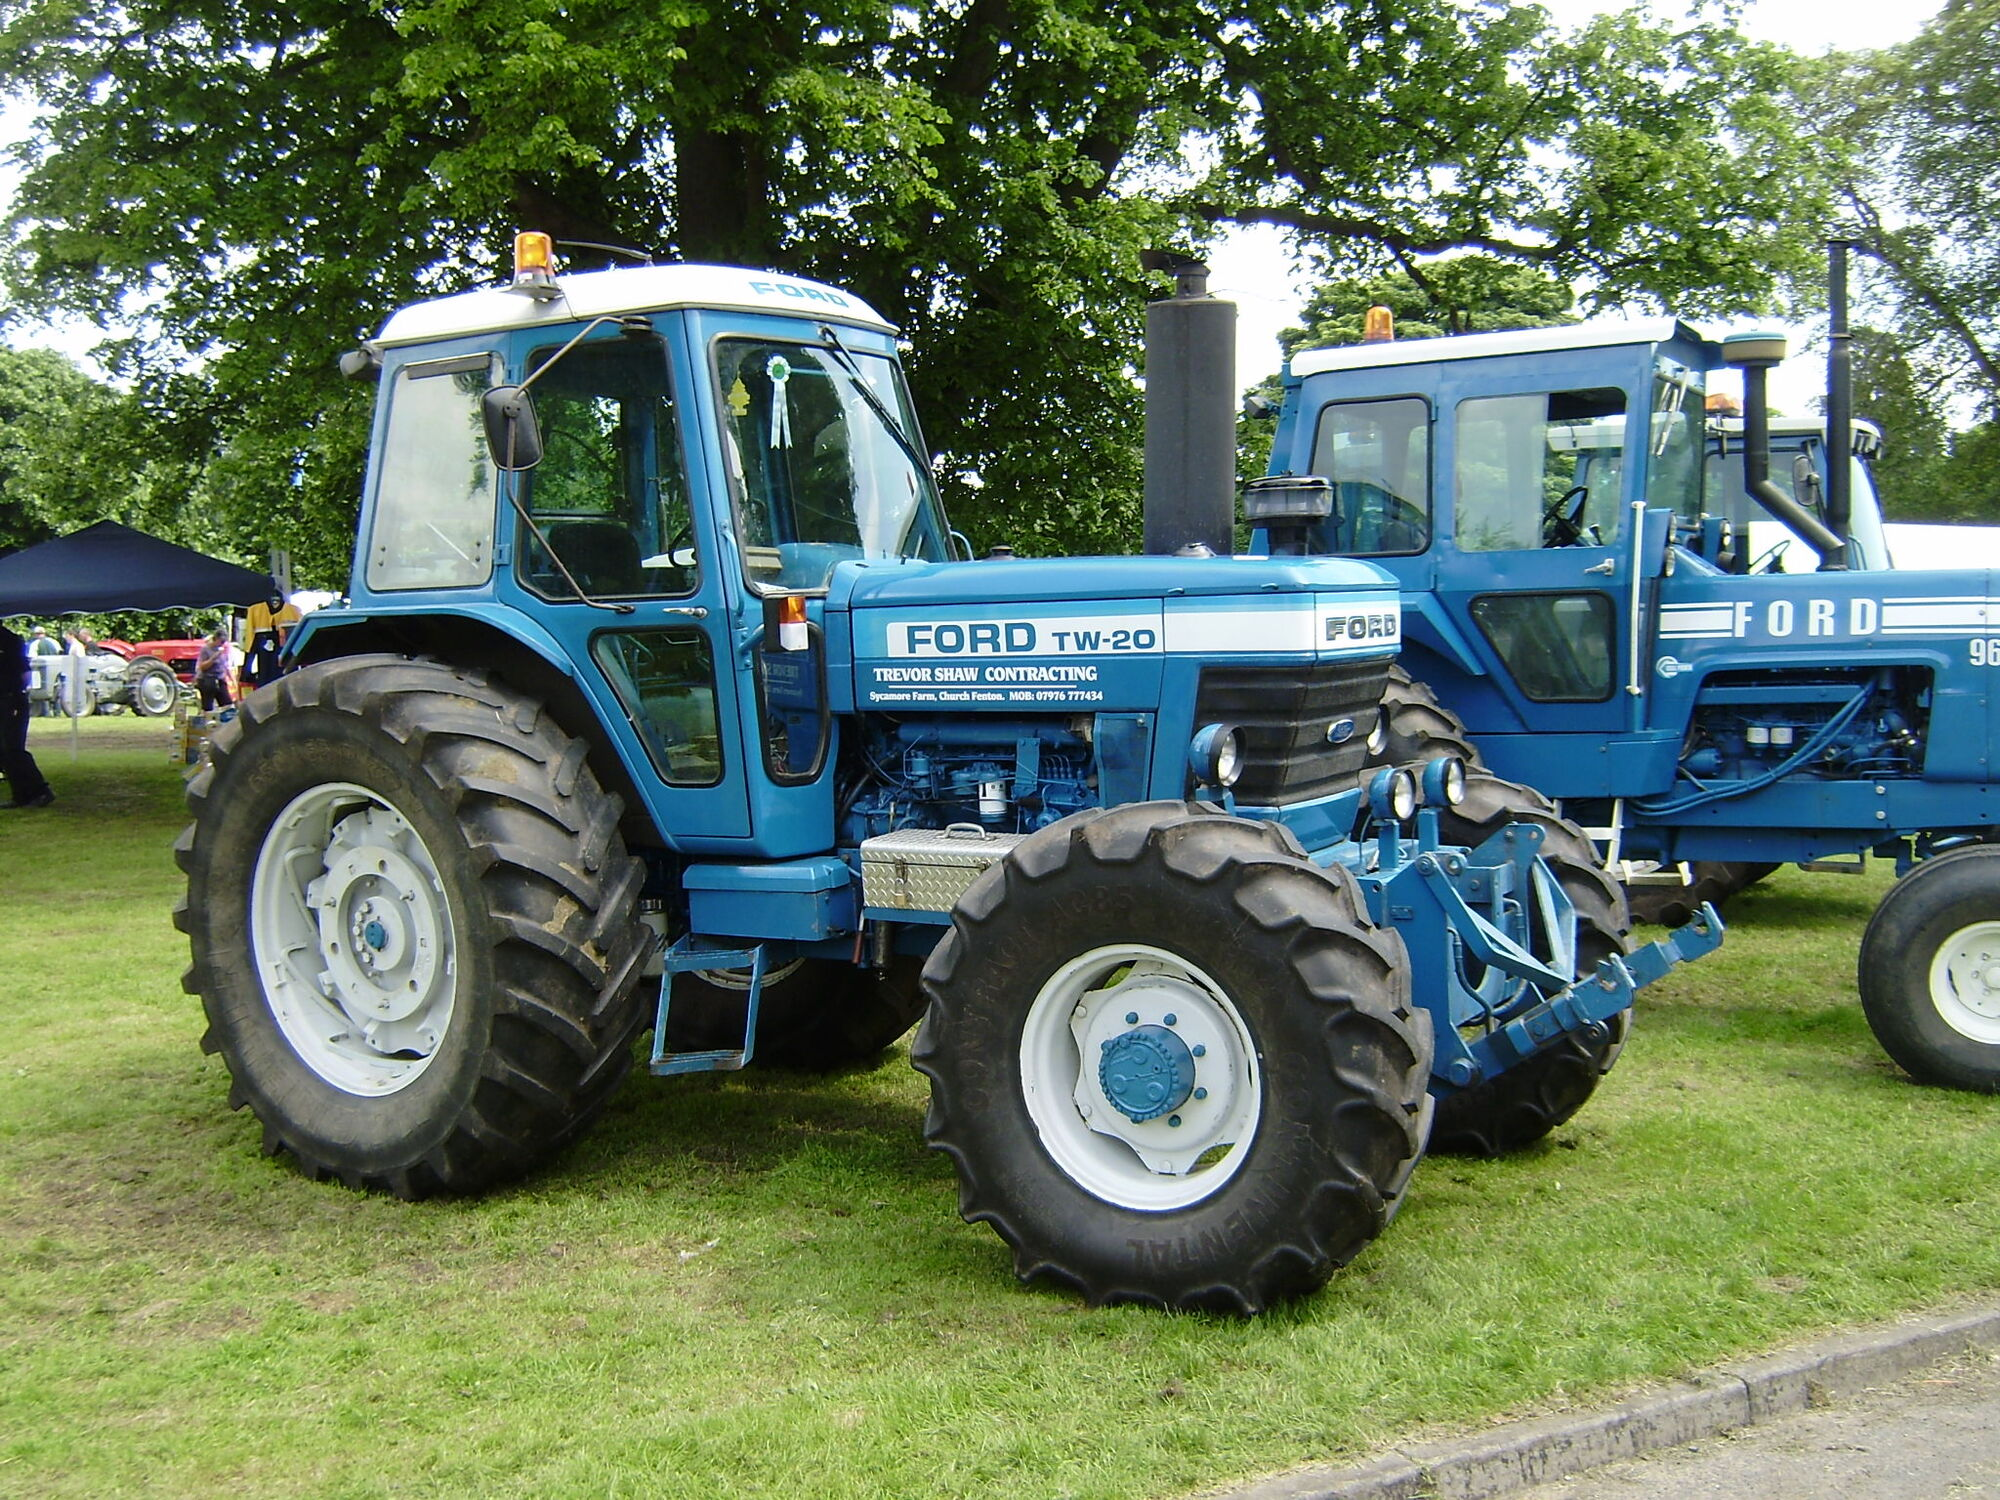 Ford Tractor Pto No 1962 : Ford tw tractor construction plant wiki fandom